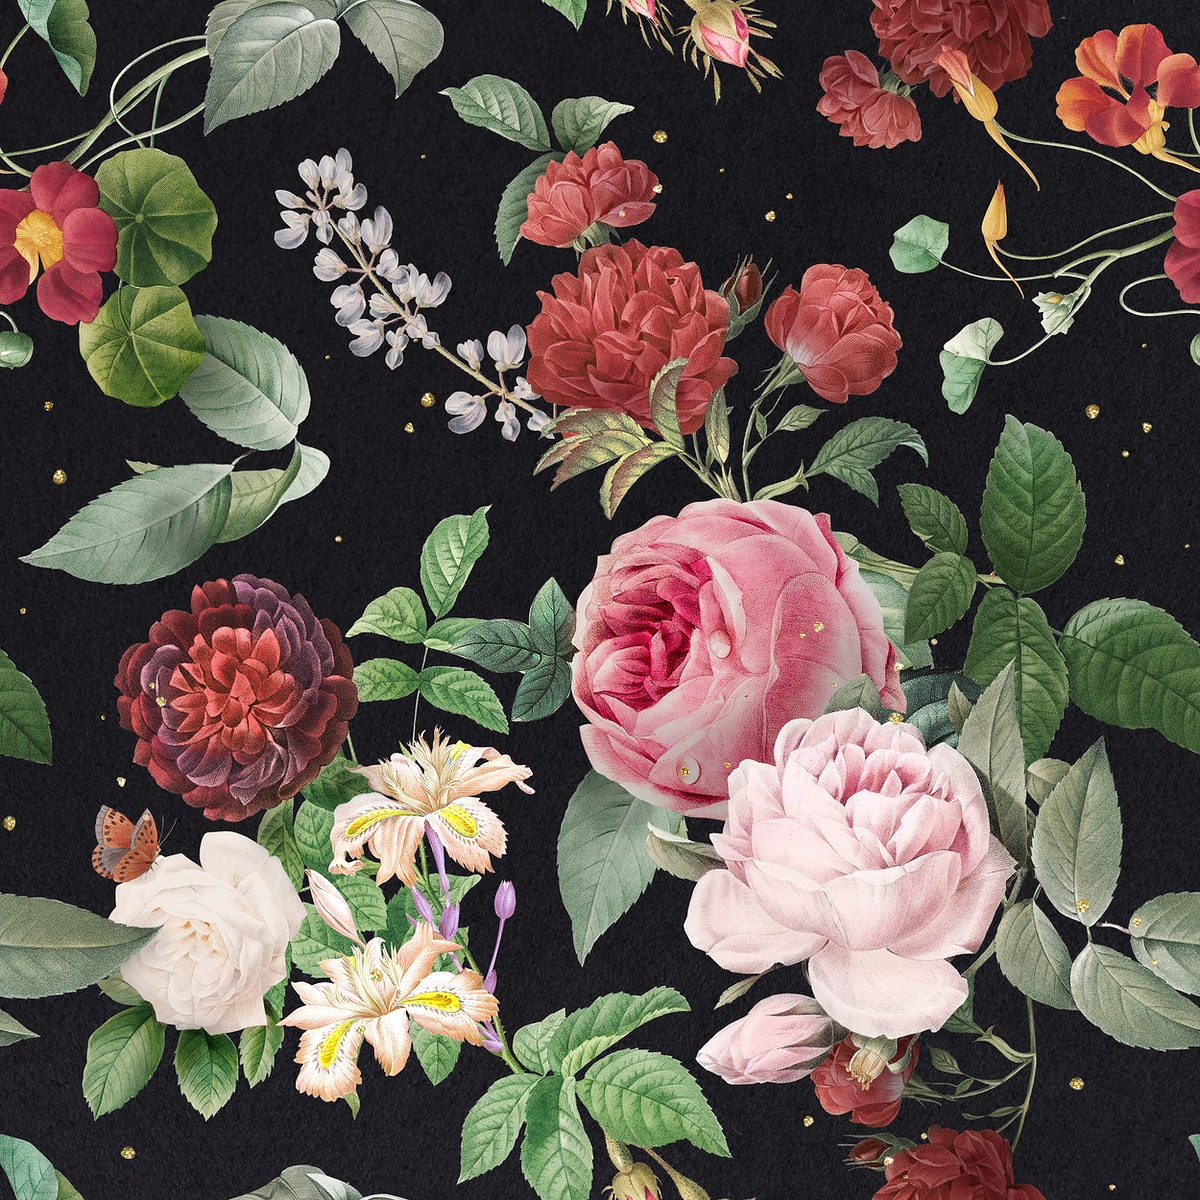 Pink roses and peony floral pattern vintage illustration